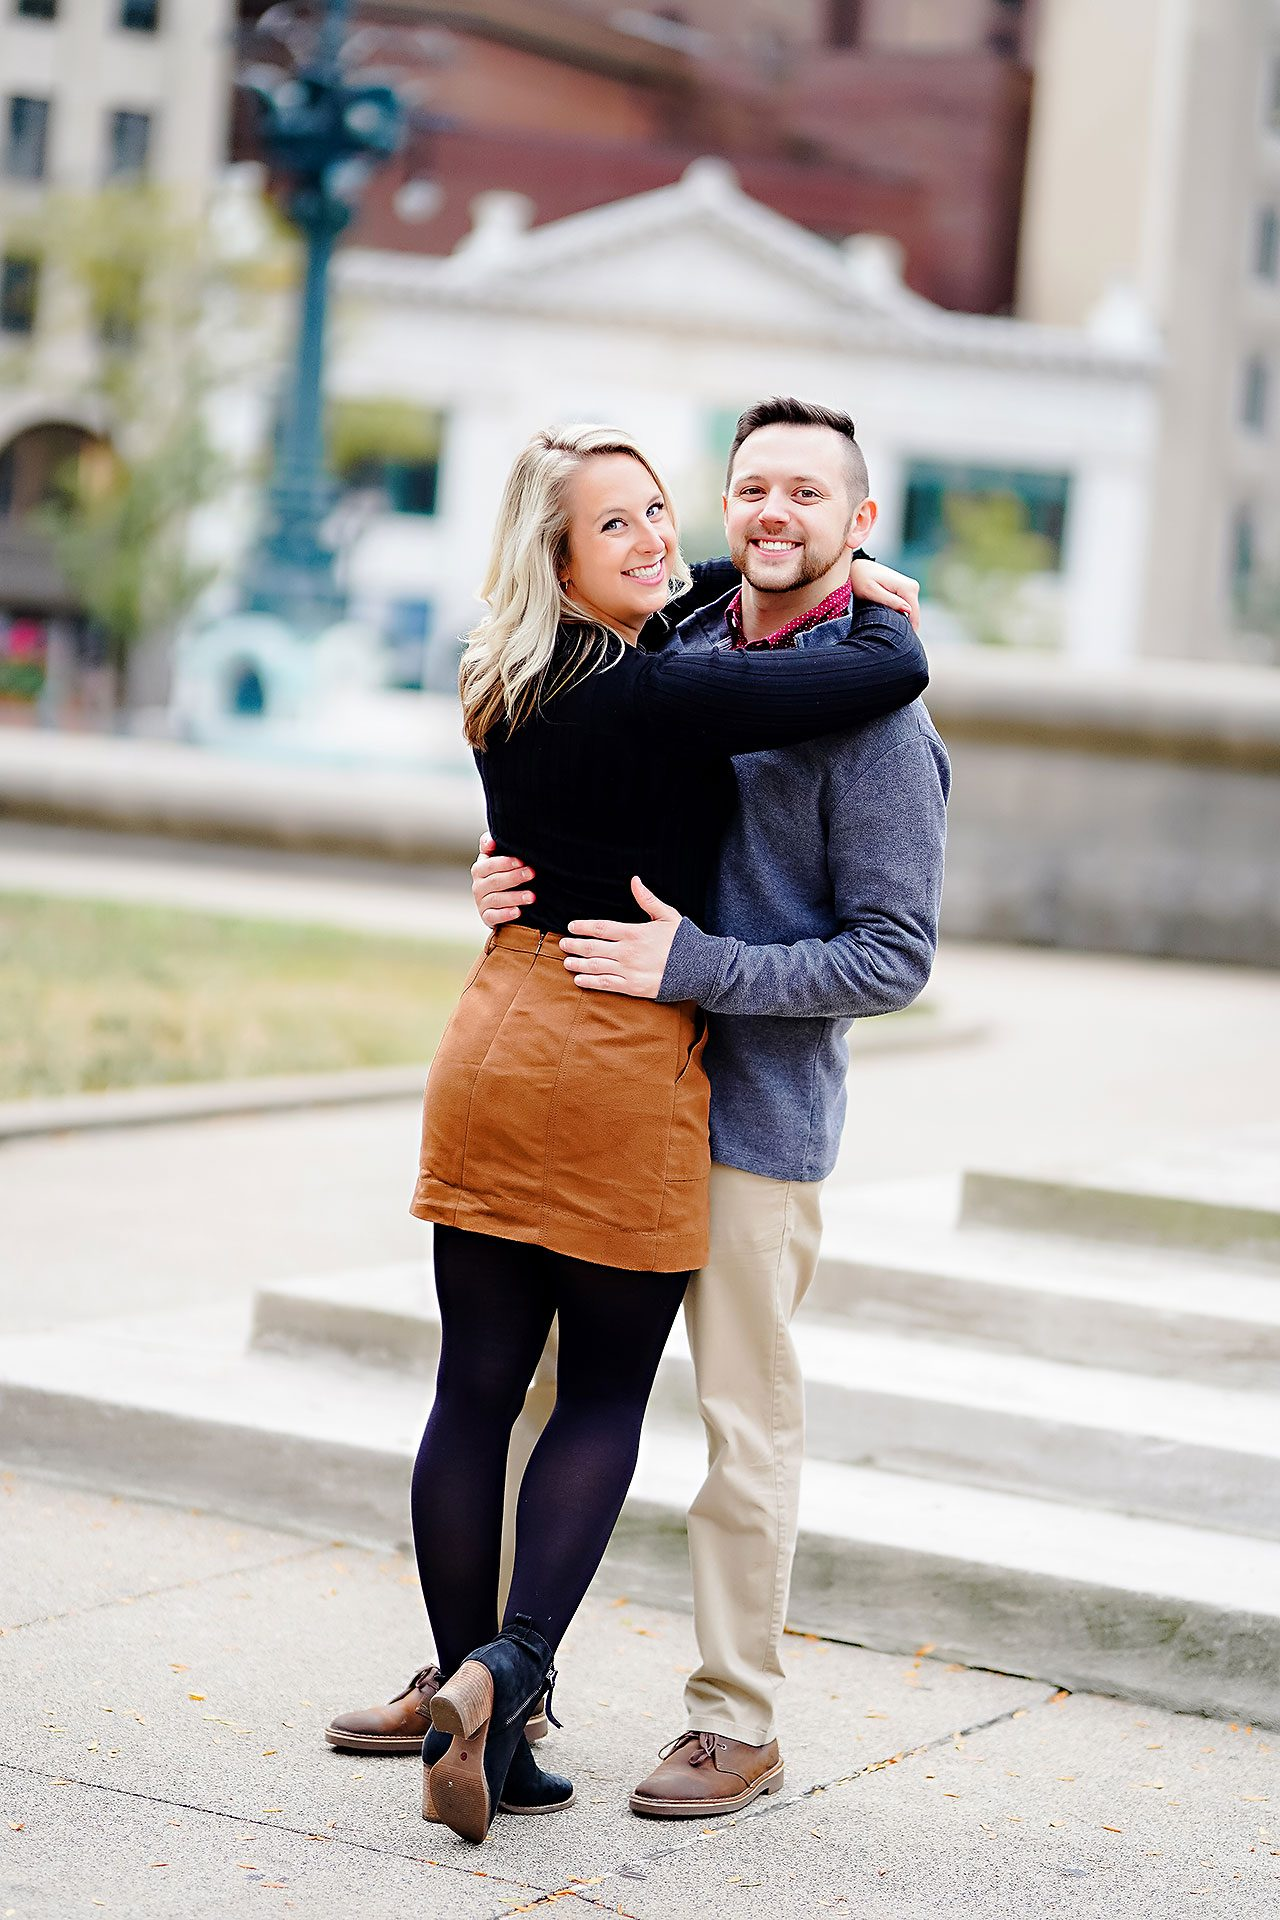 Kristen Jonny Indianapolis Downtown Engagement Session 092